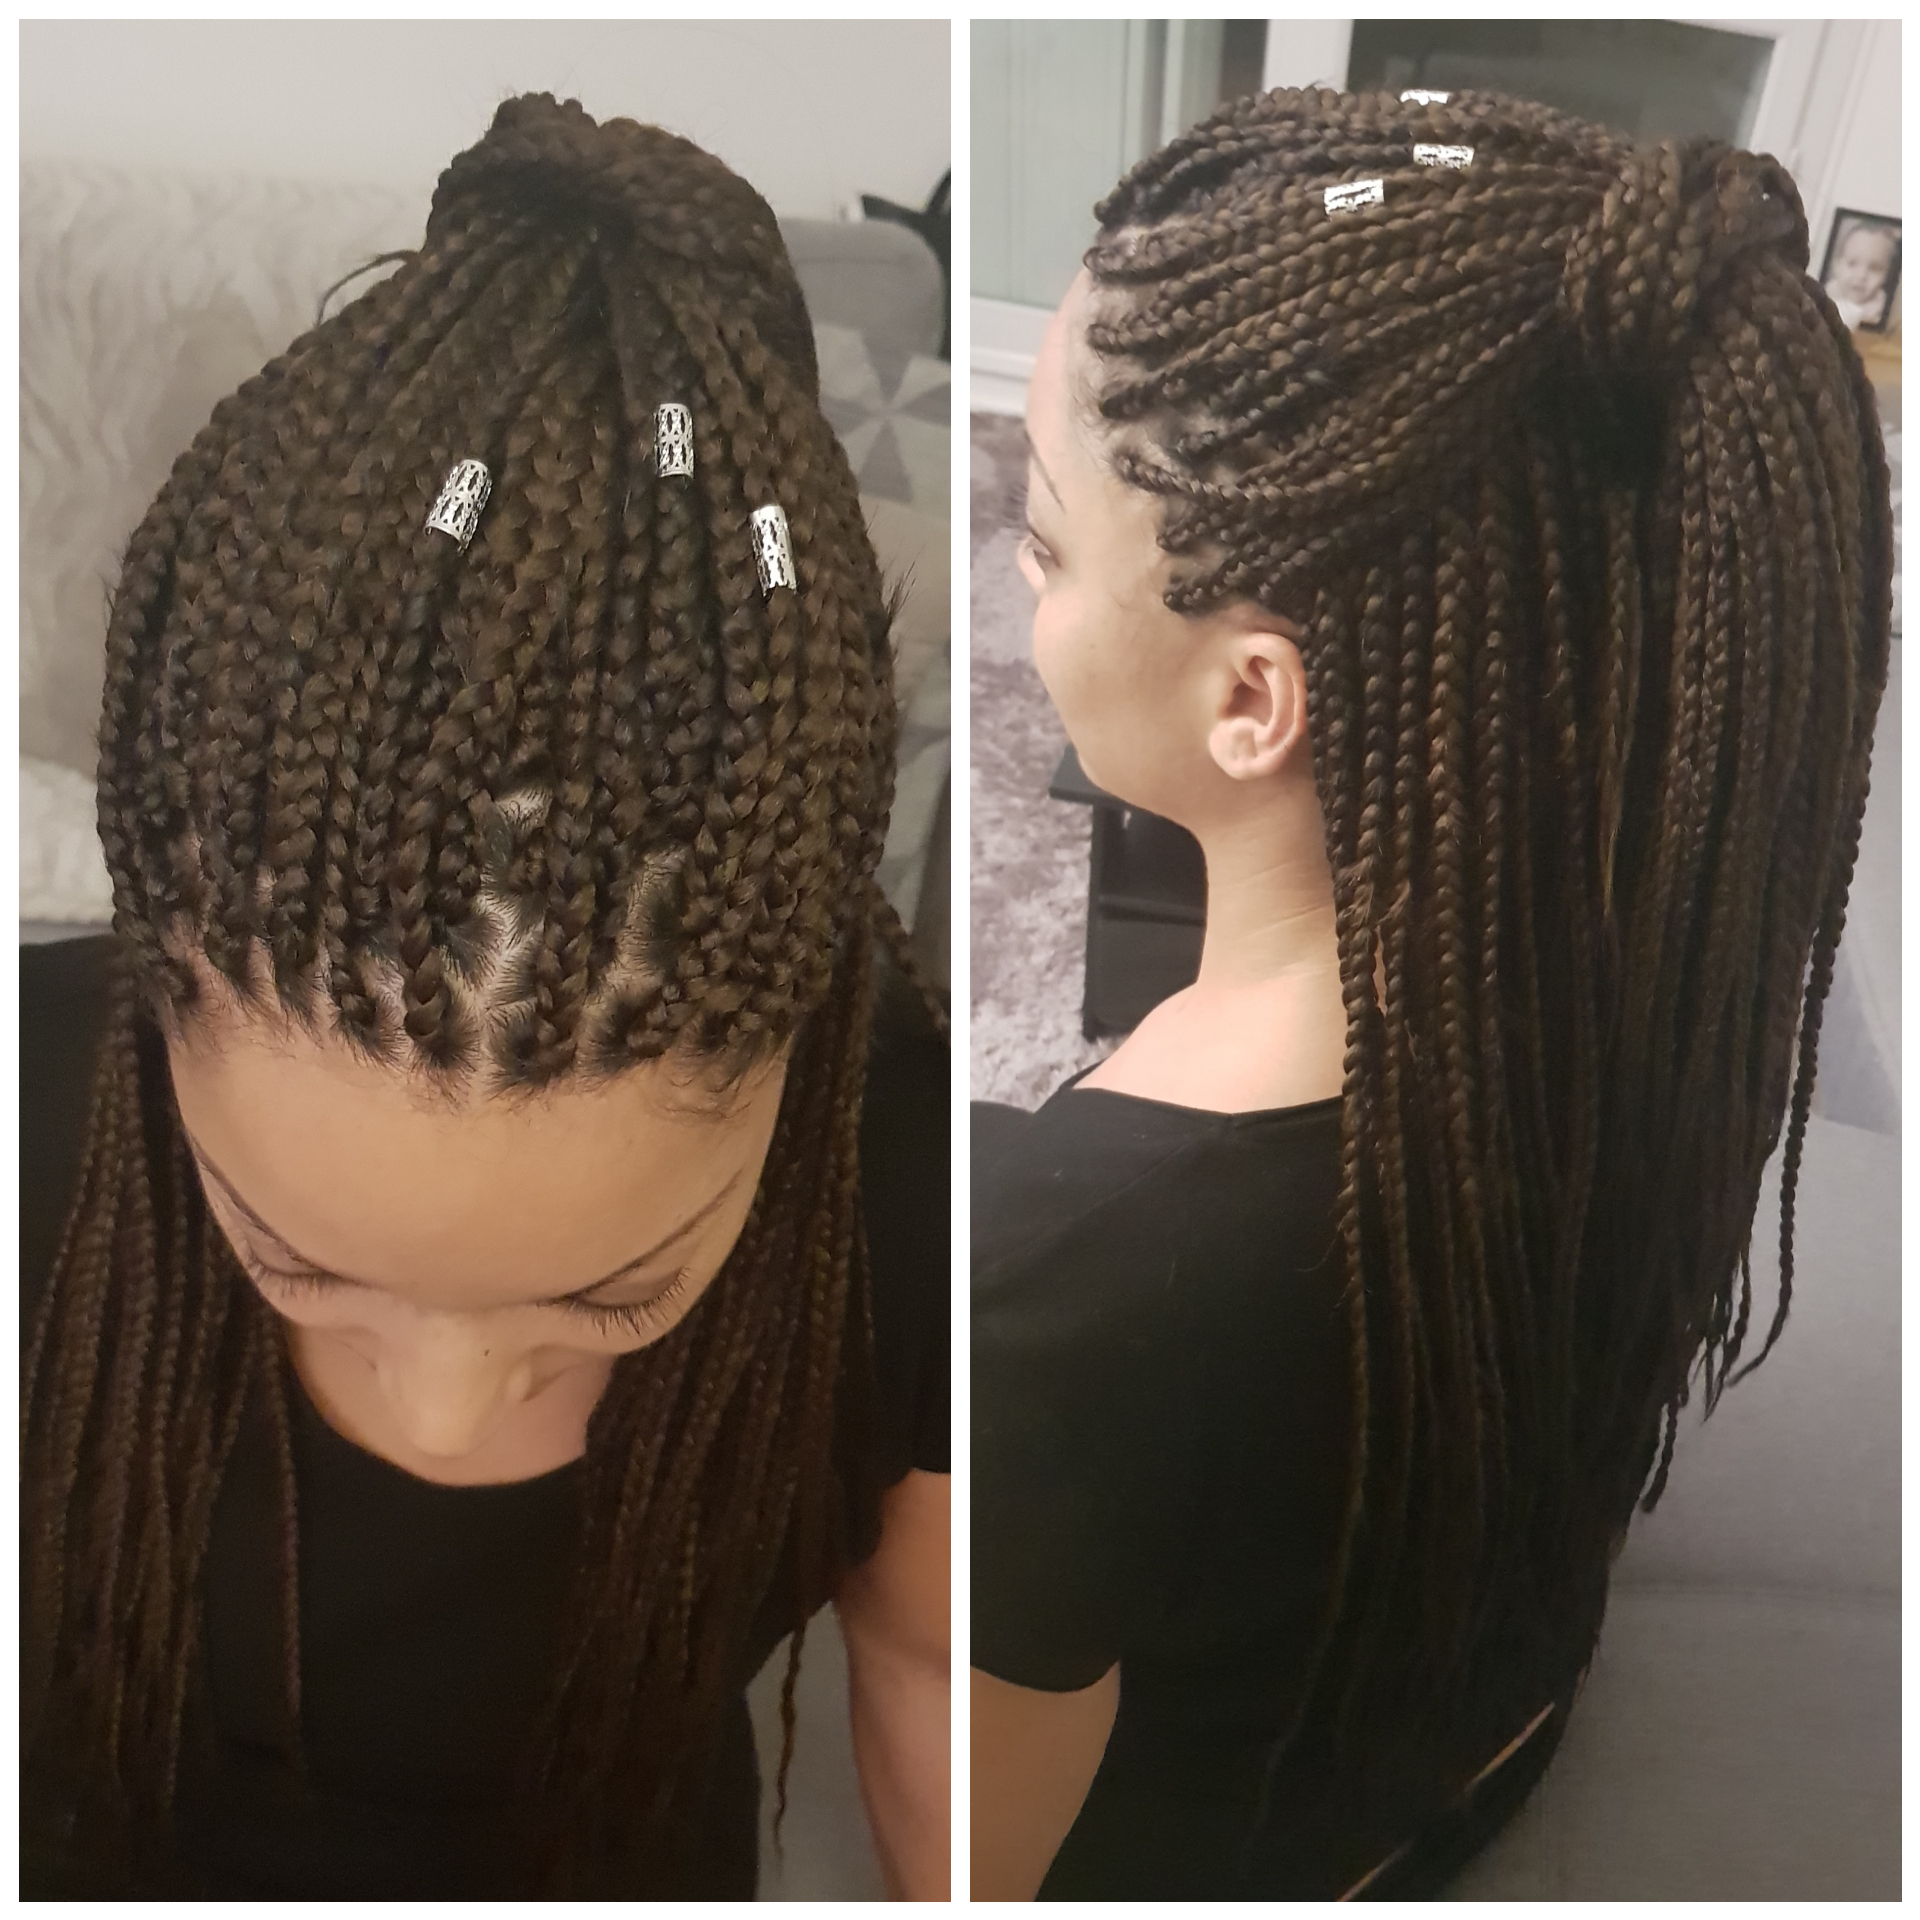 salon de coiffure afro tresse tresses box braids crochet braids vanilles tissages paris 75 77 78 91 92 93 94 95 JQNYZCGV